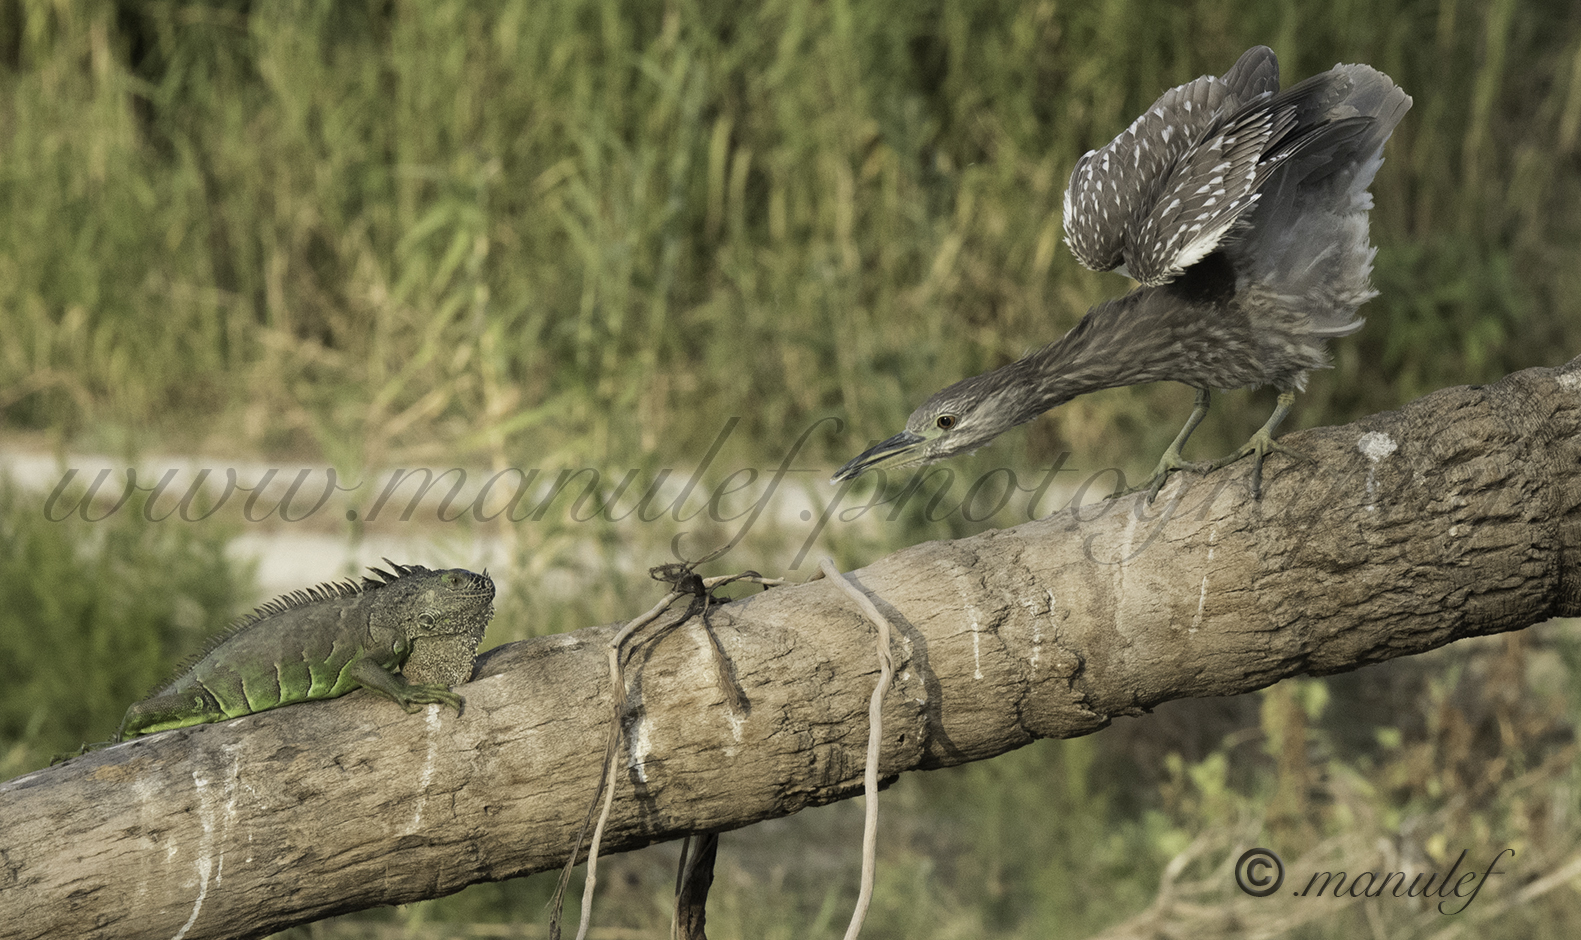 Iguane Vs Green Heron